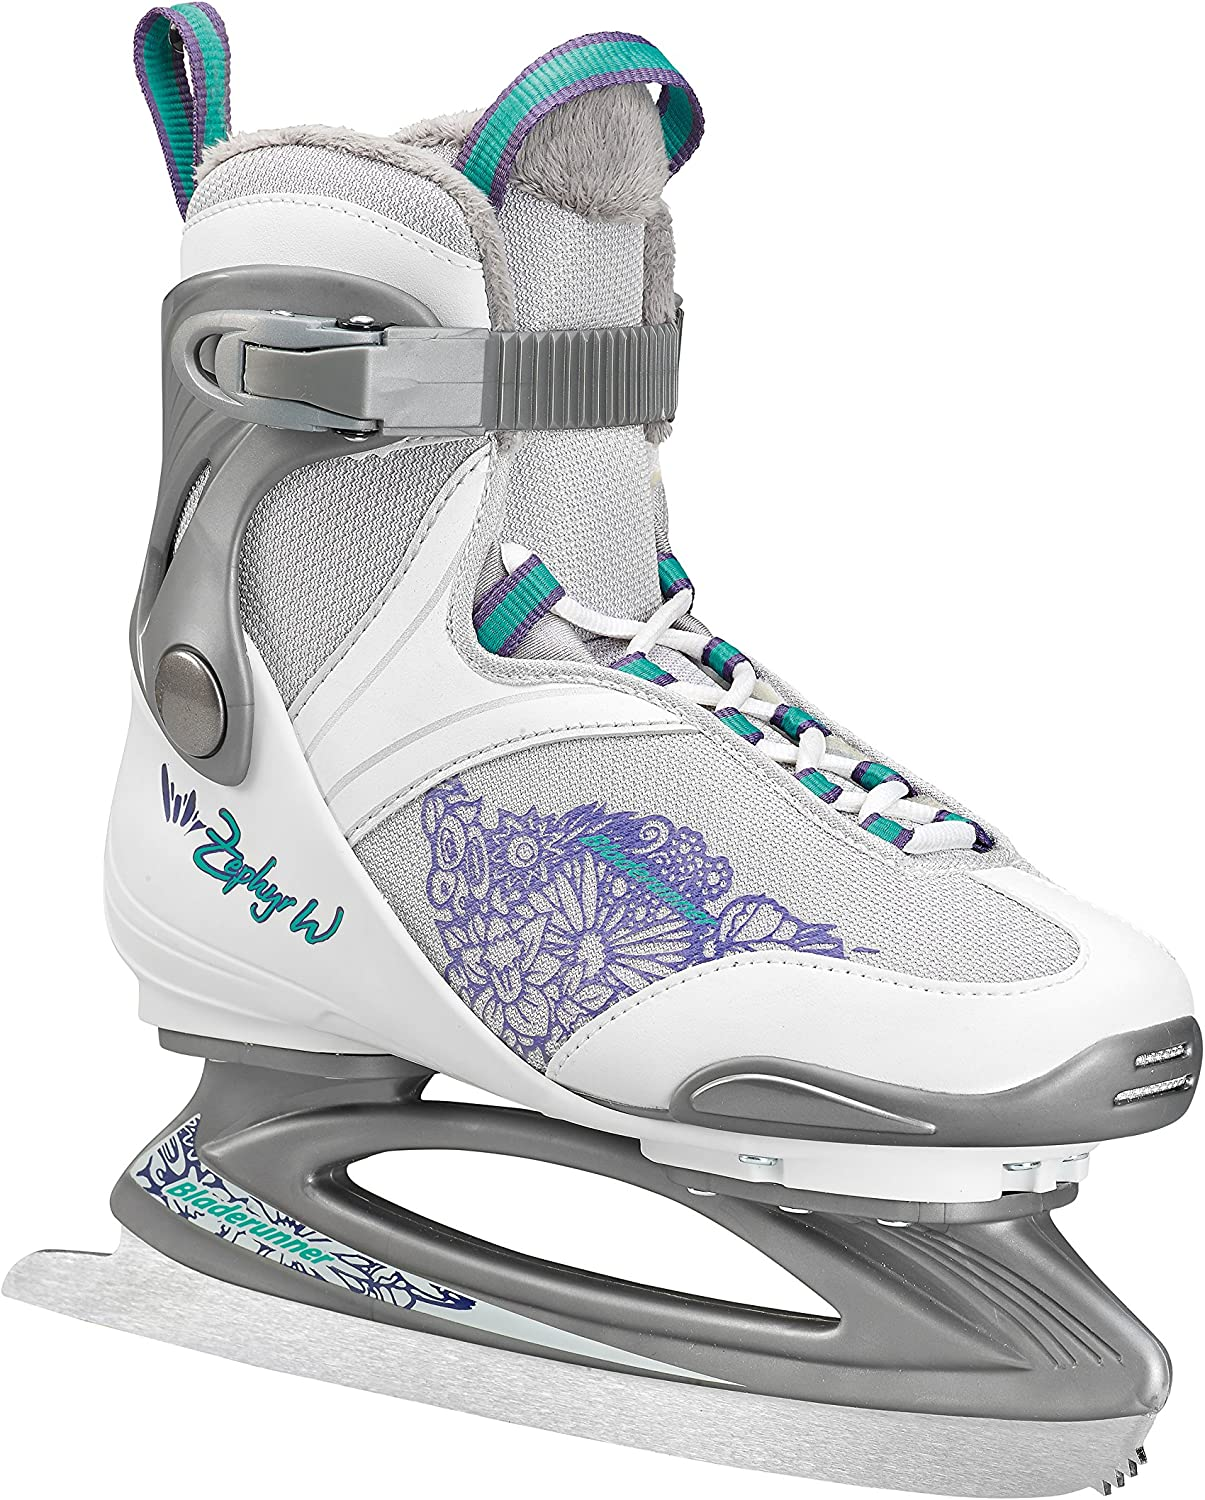 Bladerunner Ice by Rollerblade Zephyr Women s Adult Ice Skates, White and Purple, Recreational, Ice Skates